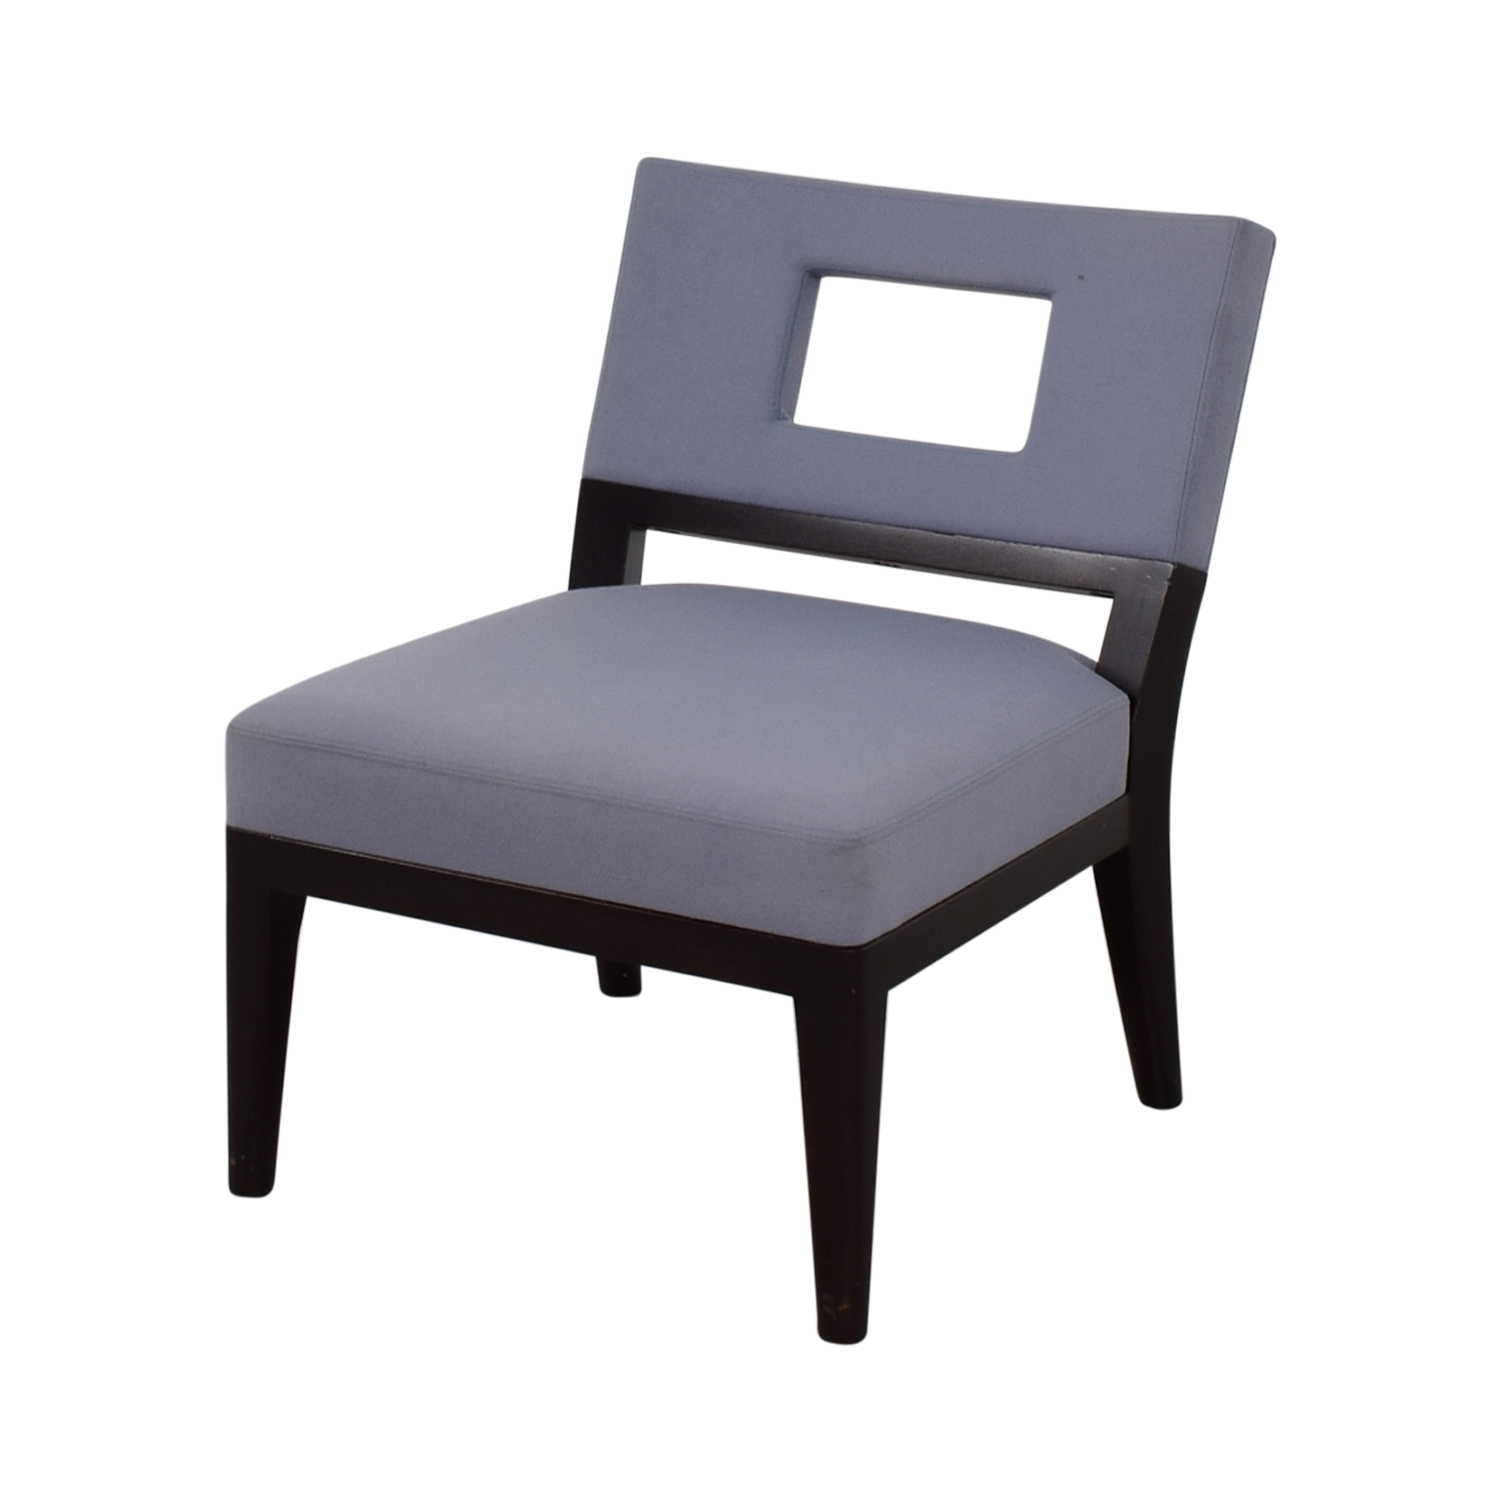 Christian Liaigre Light Blue Upholstered Chair / Chairs